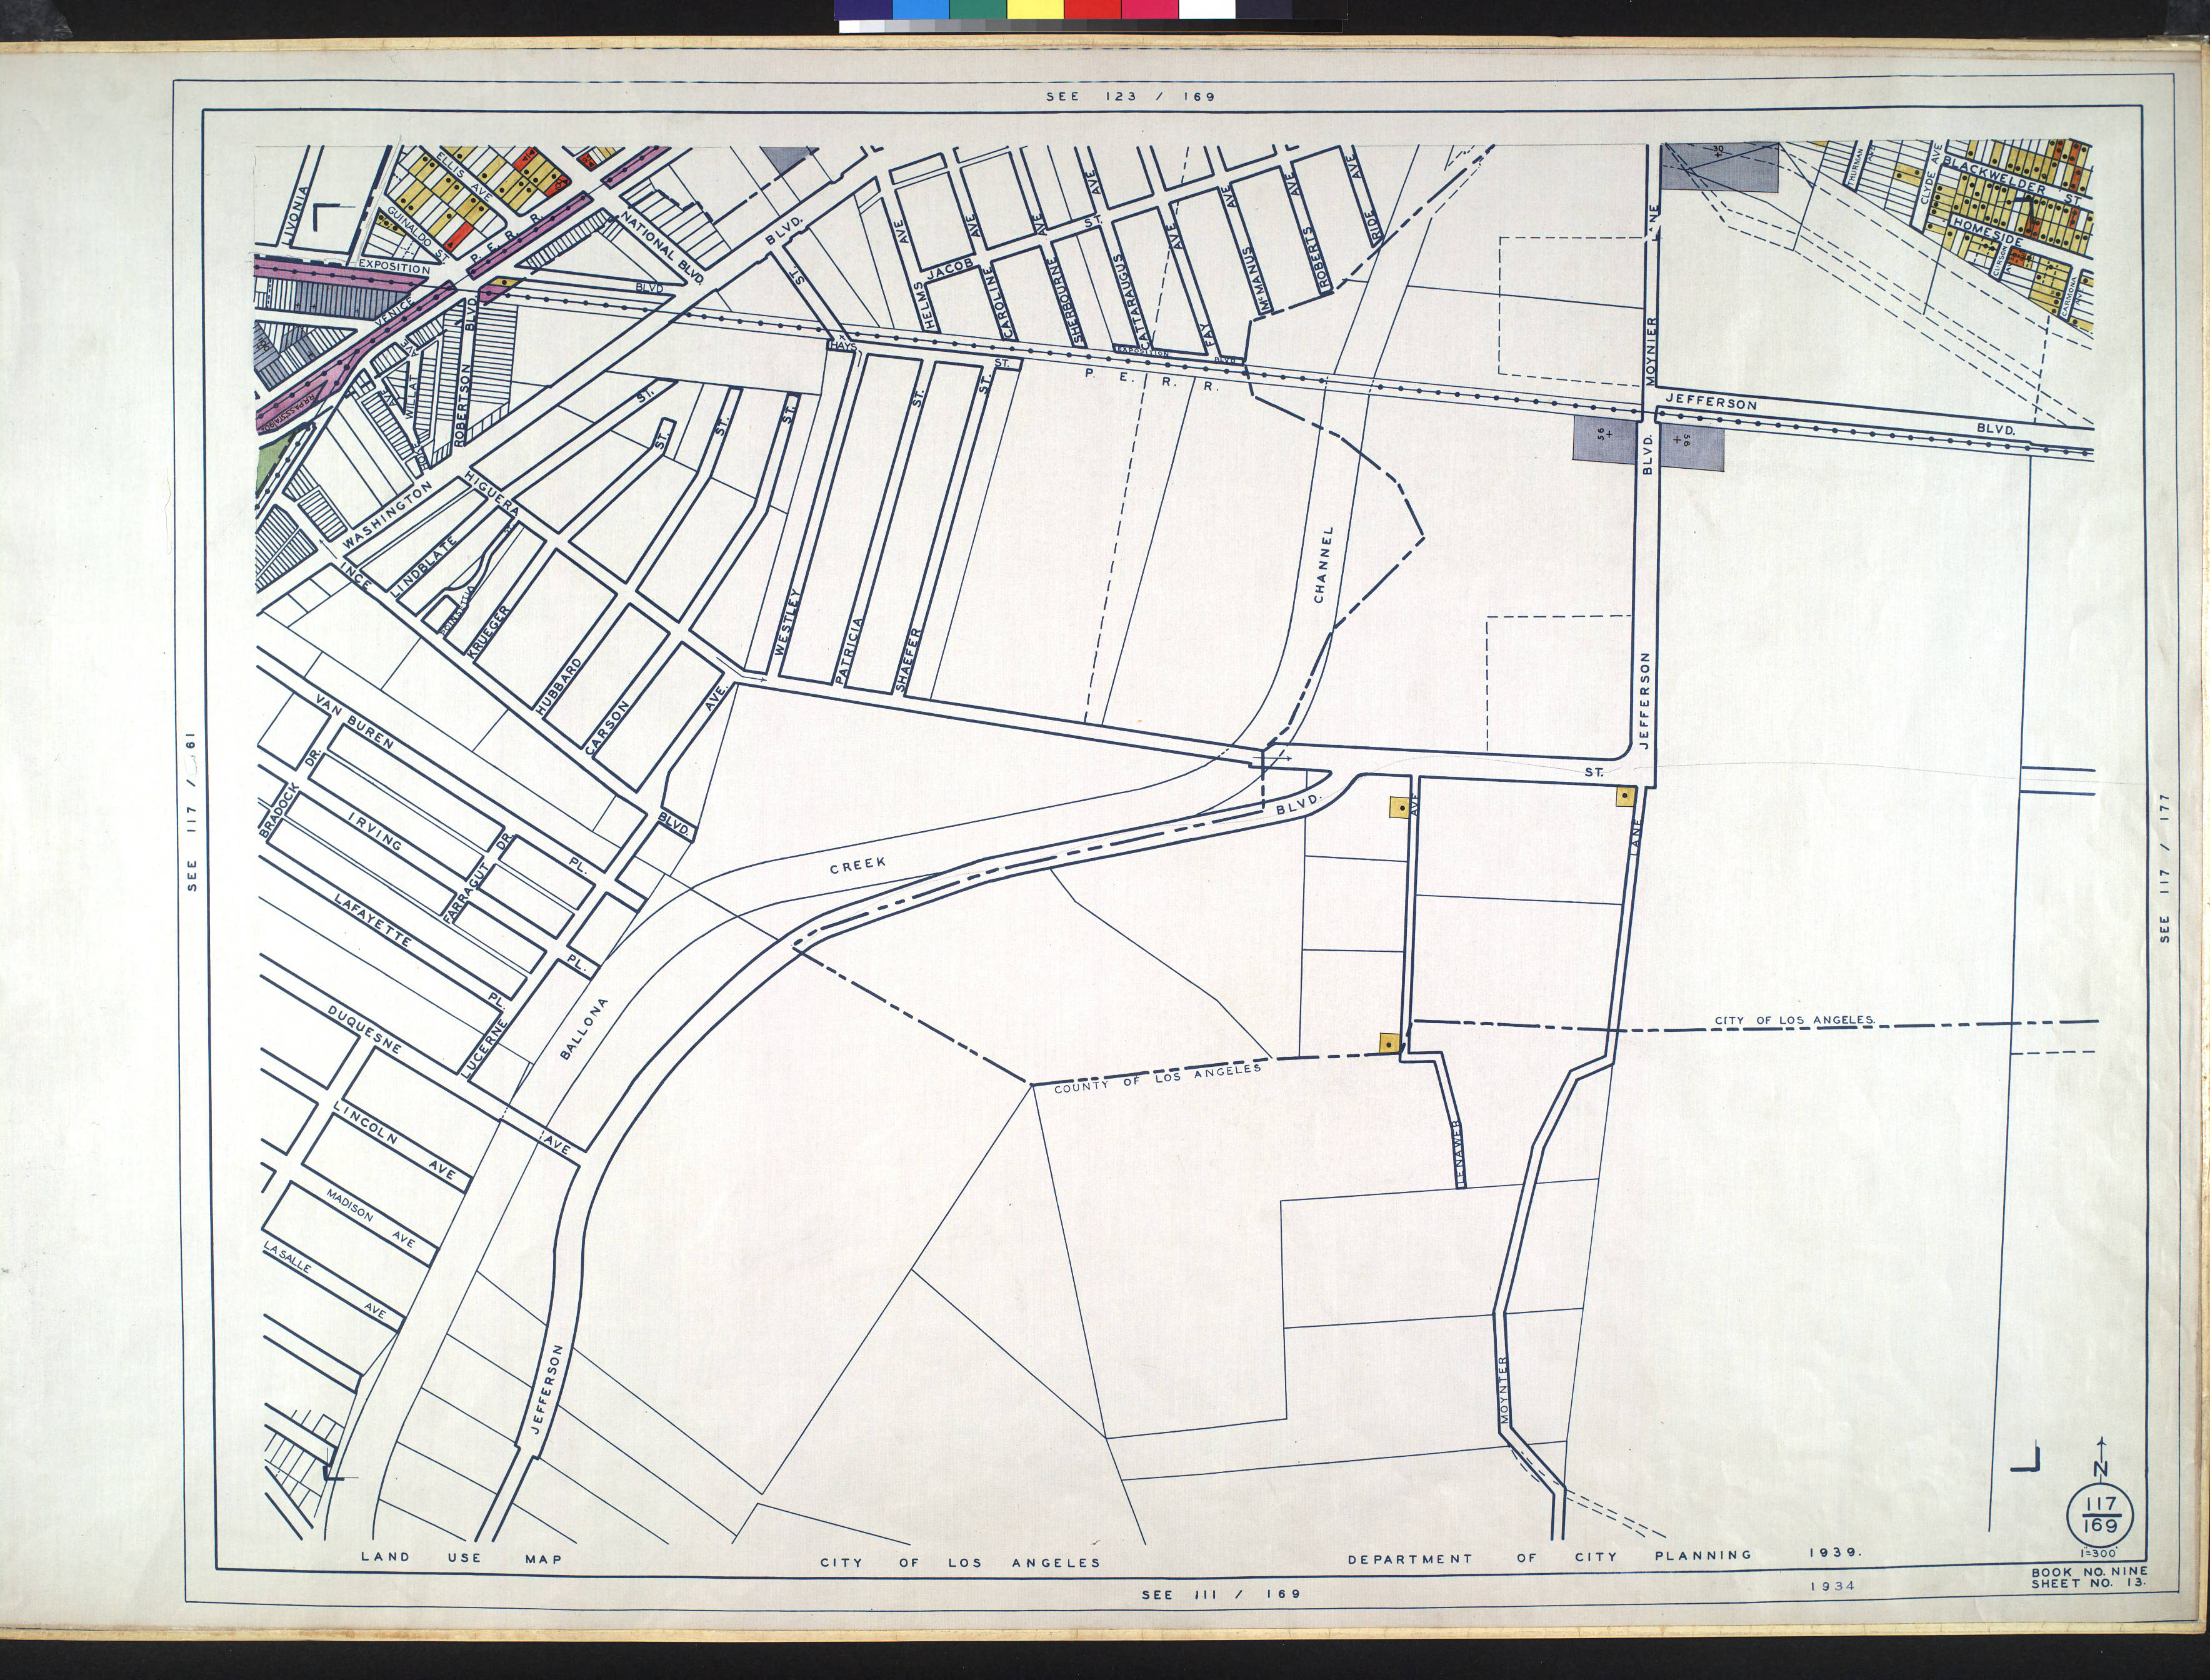 FileWPA Land Use Survey Map For The City Of Los Angeles Book - Los angeles zoning map pdf